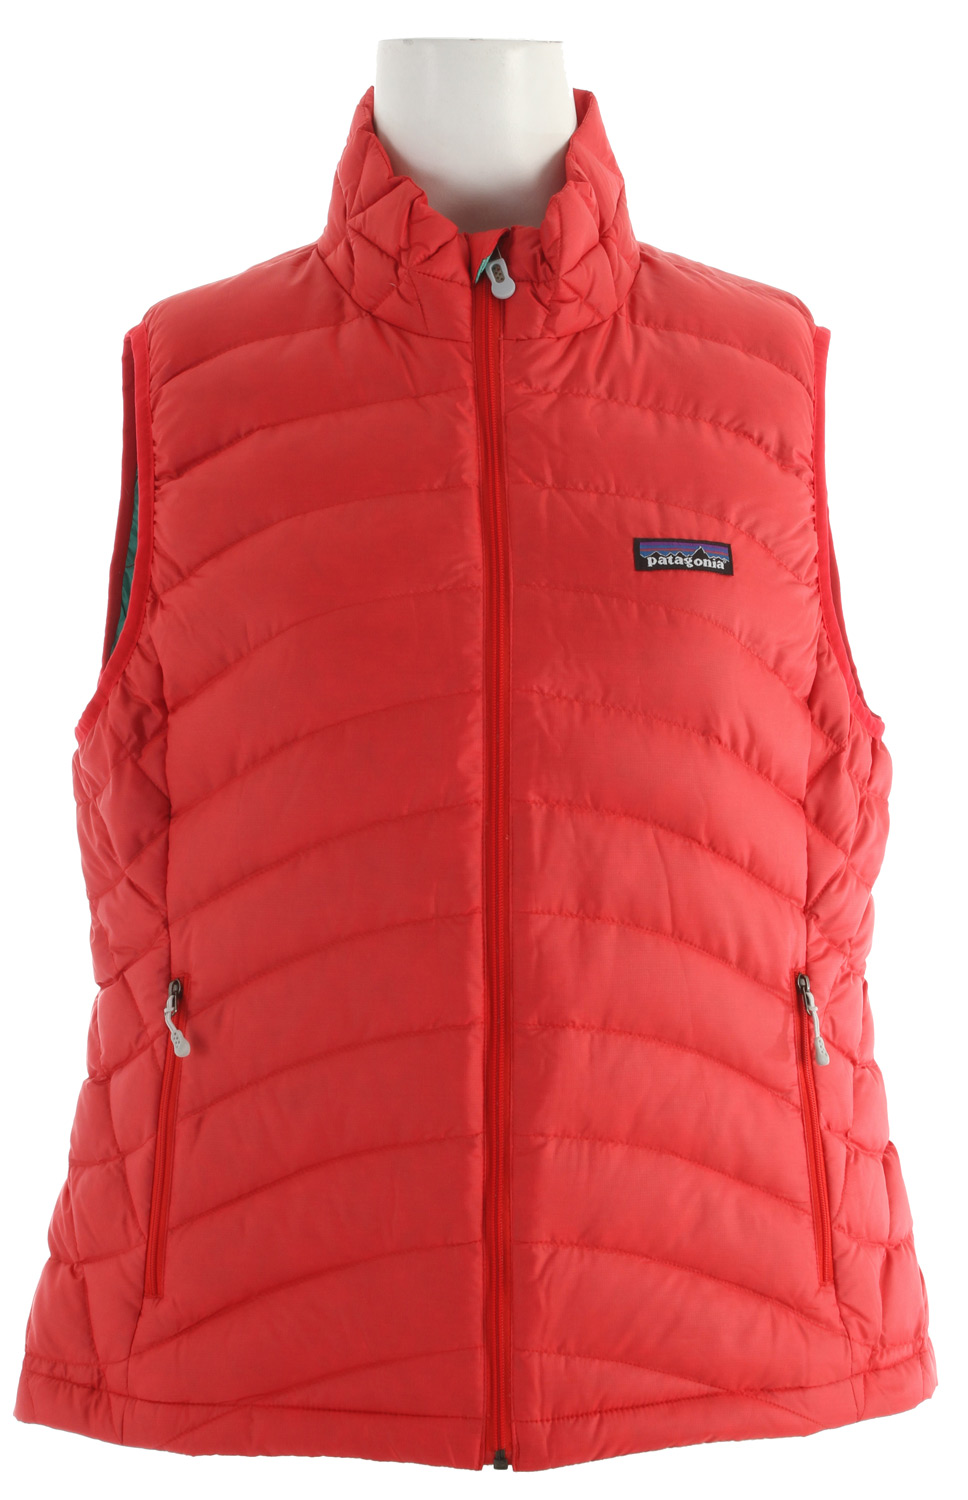 Ultralight, windproof and toasty warm, the Down Sweater Vest is highly compressible insulation with a 100% recycled polyester shell; ideal as a midlayer or as outerwear in chilly climates. This garment has a Slim Fit The light, high-lofting feathers in this Vest float just off your core, trapping heat without you knowing anything's there. Until, of course, you take off the Vest (and quickly put it back on). Its 800-fill-power down seals in warmth, and it's so compact it stuffs into a stretch-mesh internal pocket (with a carabiner clip-in loop). The innovative 100% recycled polyester shell with a Deluge DWR (durable water repellent) finish provides wind and water protection as well as high tear-strength; quilting stabilizes the down. With zippered handwarmer pockets and a drawcord hem.Key Features of the Patagonia Down Sweater Vest: Superlight, windproof shell fabric with high tear-strength has a Deluge DWR (durable water repellent) finish Quilted construction stabilizes 800-fill-power premium European goose down Zippered pockets: Two handwarmers, one stretch mesh stuff-sack pocket with a reinforced carabiner clip-in loop Elastic binding at armholes Drawcord hem seals out wind Shell and lining: 1.4-oz 22-denier 100% recycled polyester with a Deluge DWR (durable water repellent) finish. Insulation: 800-fill-power premium European goose down 260 g (9.2 oz) Made in Vietnam. Recycled Polyester: We recycle used soda bottles, unusable second quality fabrics and worn out garments into polyester fibers to produce many of our clothes. Deluge DWR: Patagonia's proprietary durable water repellent fabric finish, Deluge DWR, lasts substantially longer than standard DWRs. Garments with the Deluge DWR finish have like-new repellency after years of extensive use. - $105.95